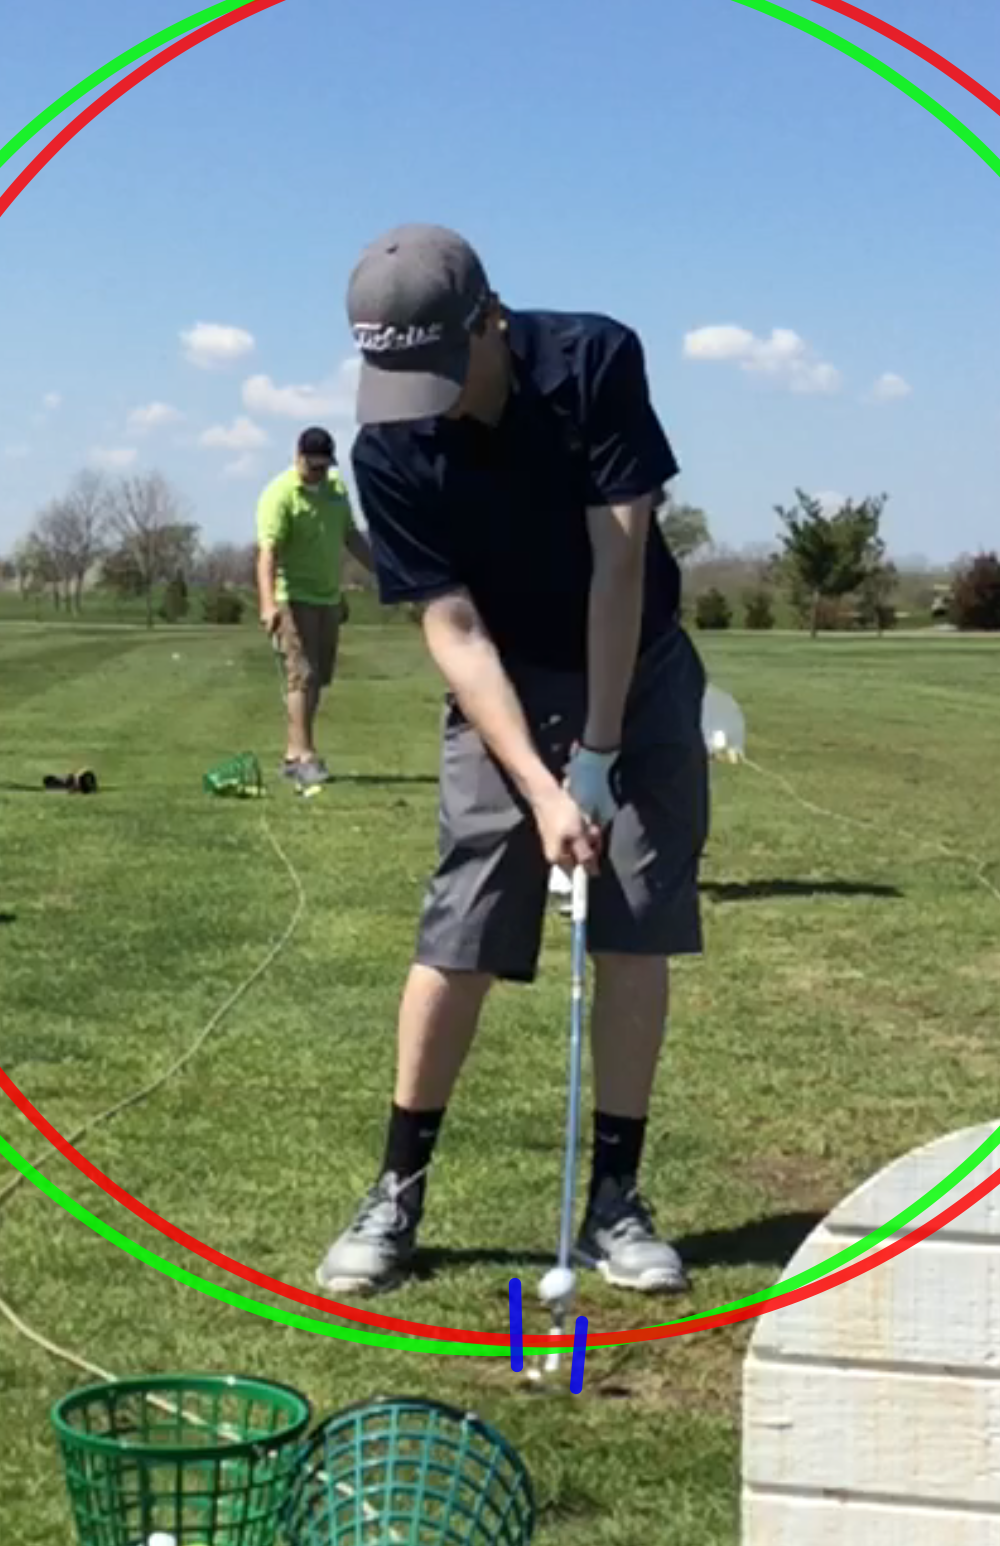 The before and after of low point control.  Notice the low point has shifted in front of the ball for this shot off the ground.